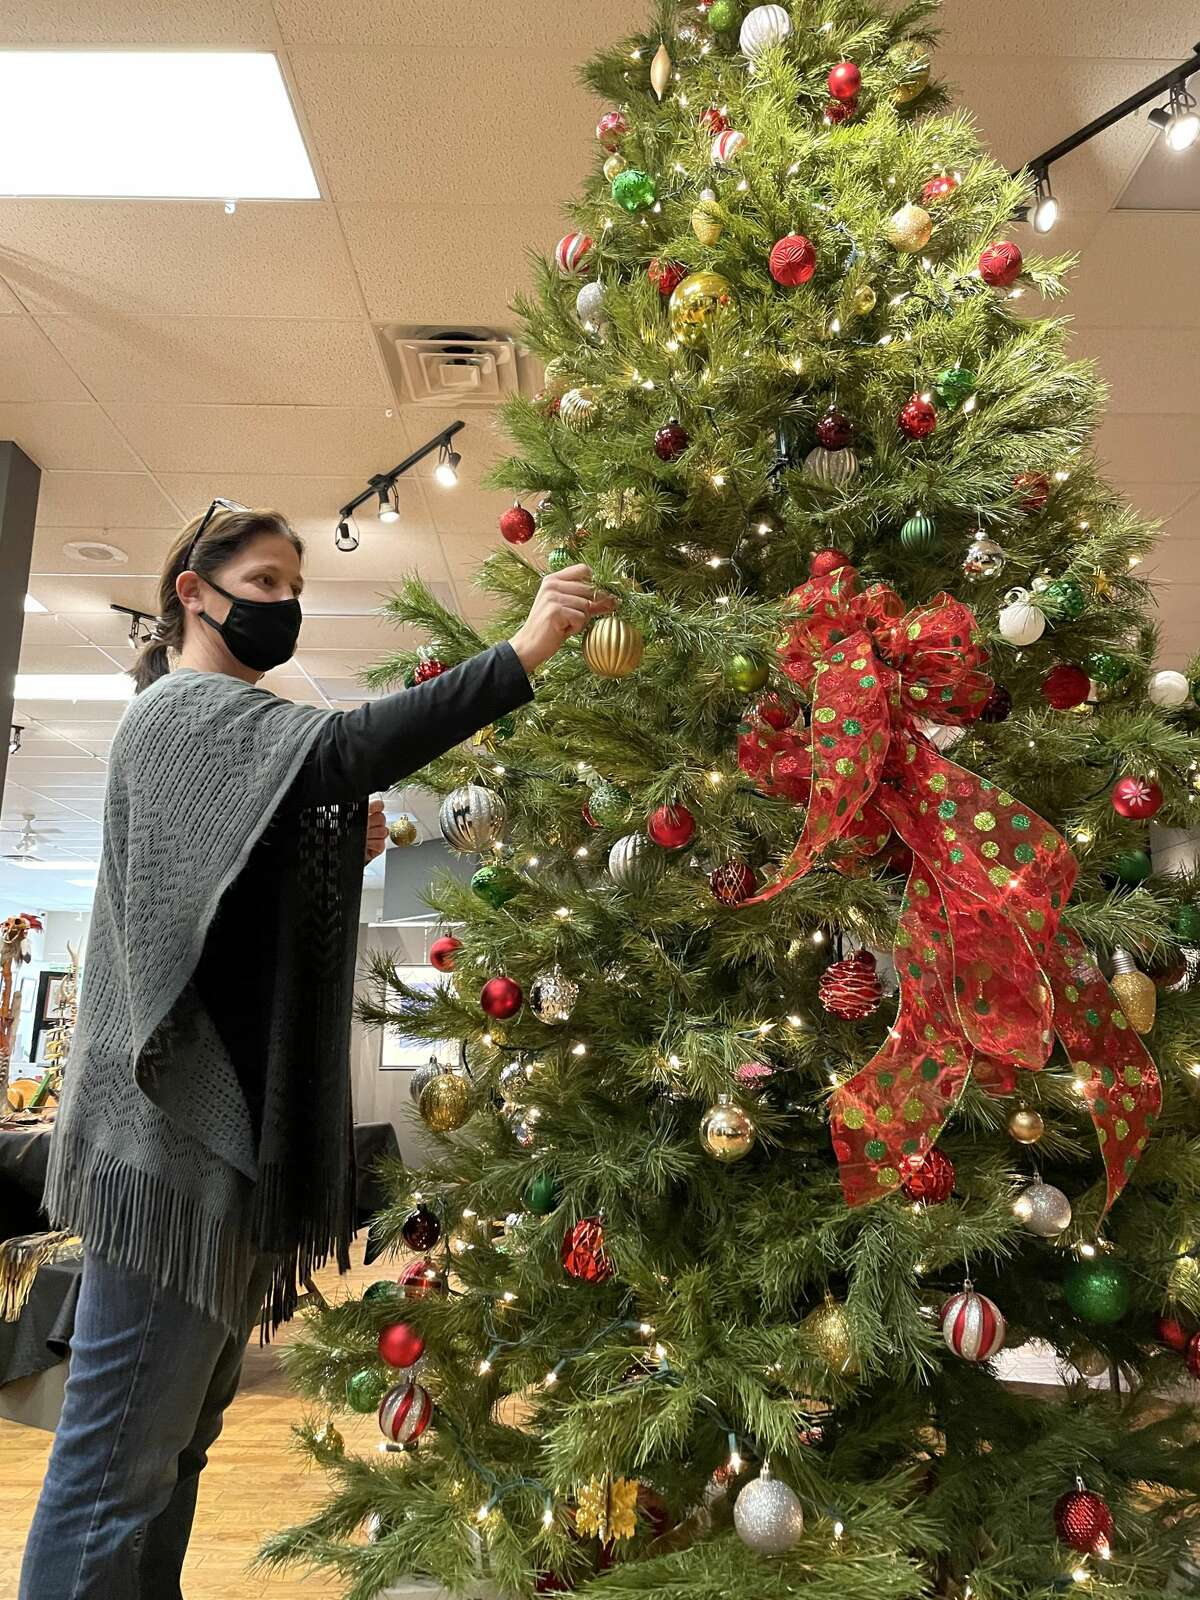 Stacie Wright, gift shop manager ofThe Painted Turtle, puts a final decoration on a Christmas tree in the Batdorff Gallery on Wednesday as this year's Holiday Marketis now underway.